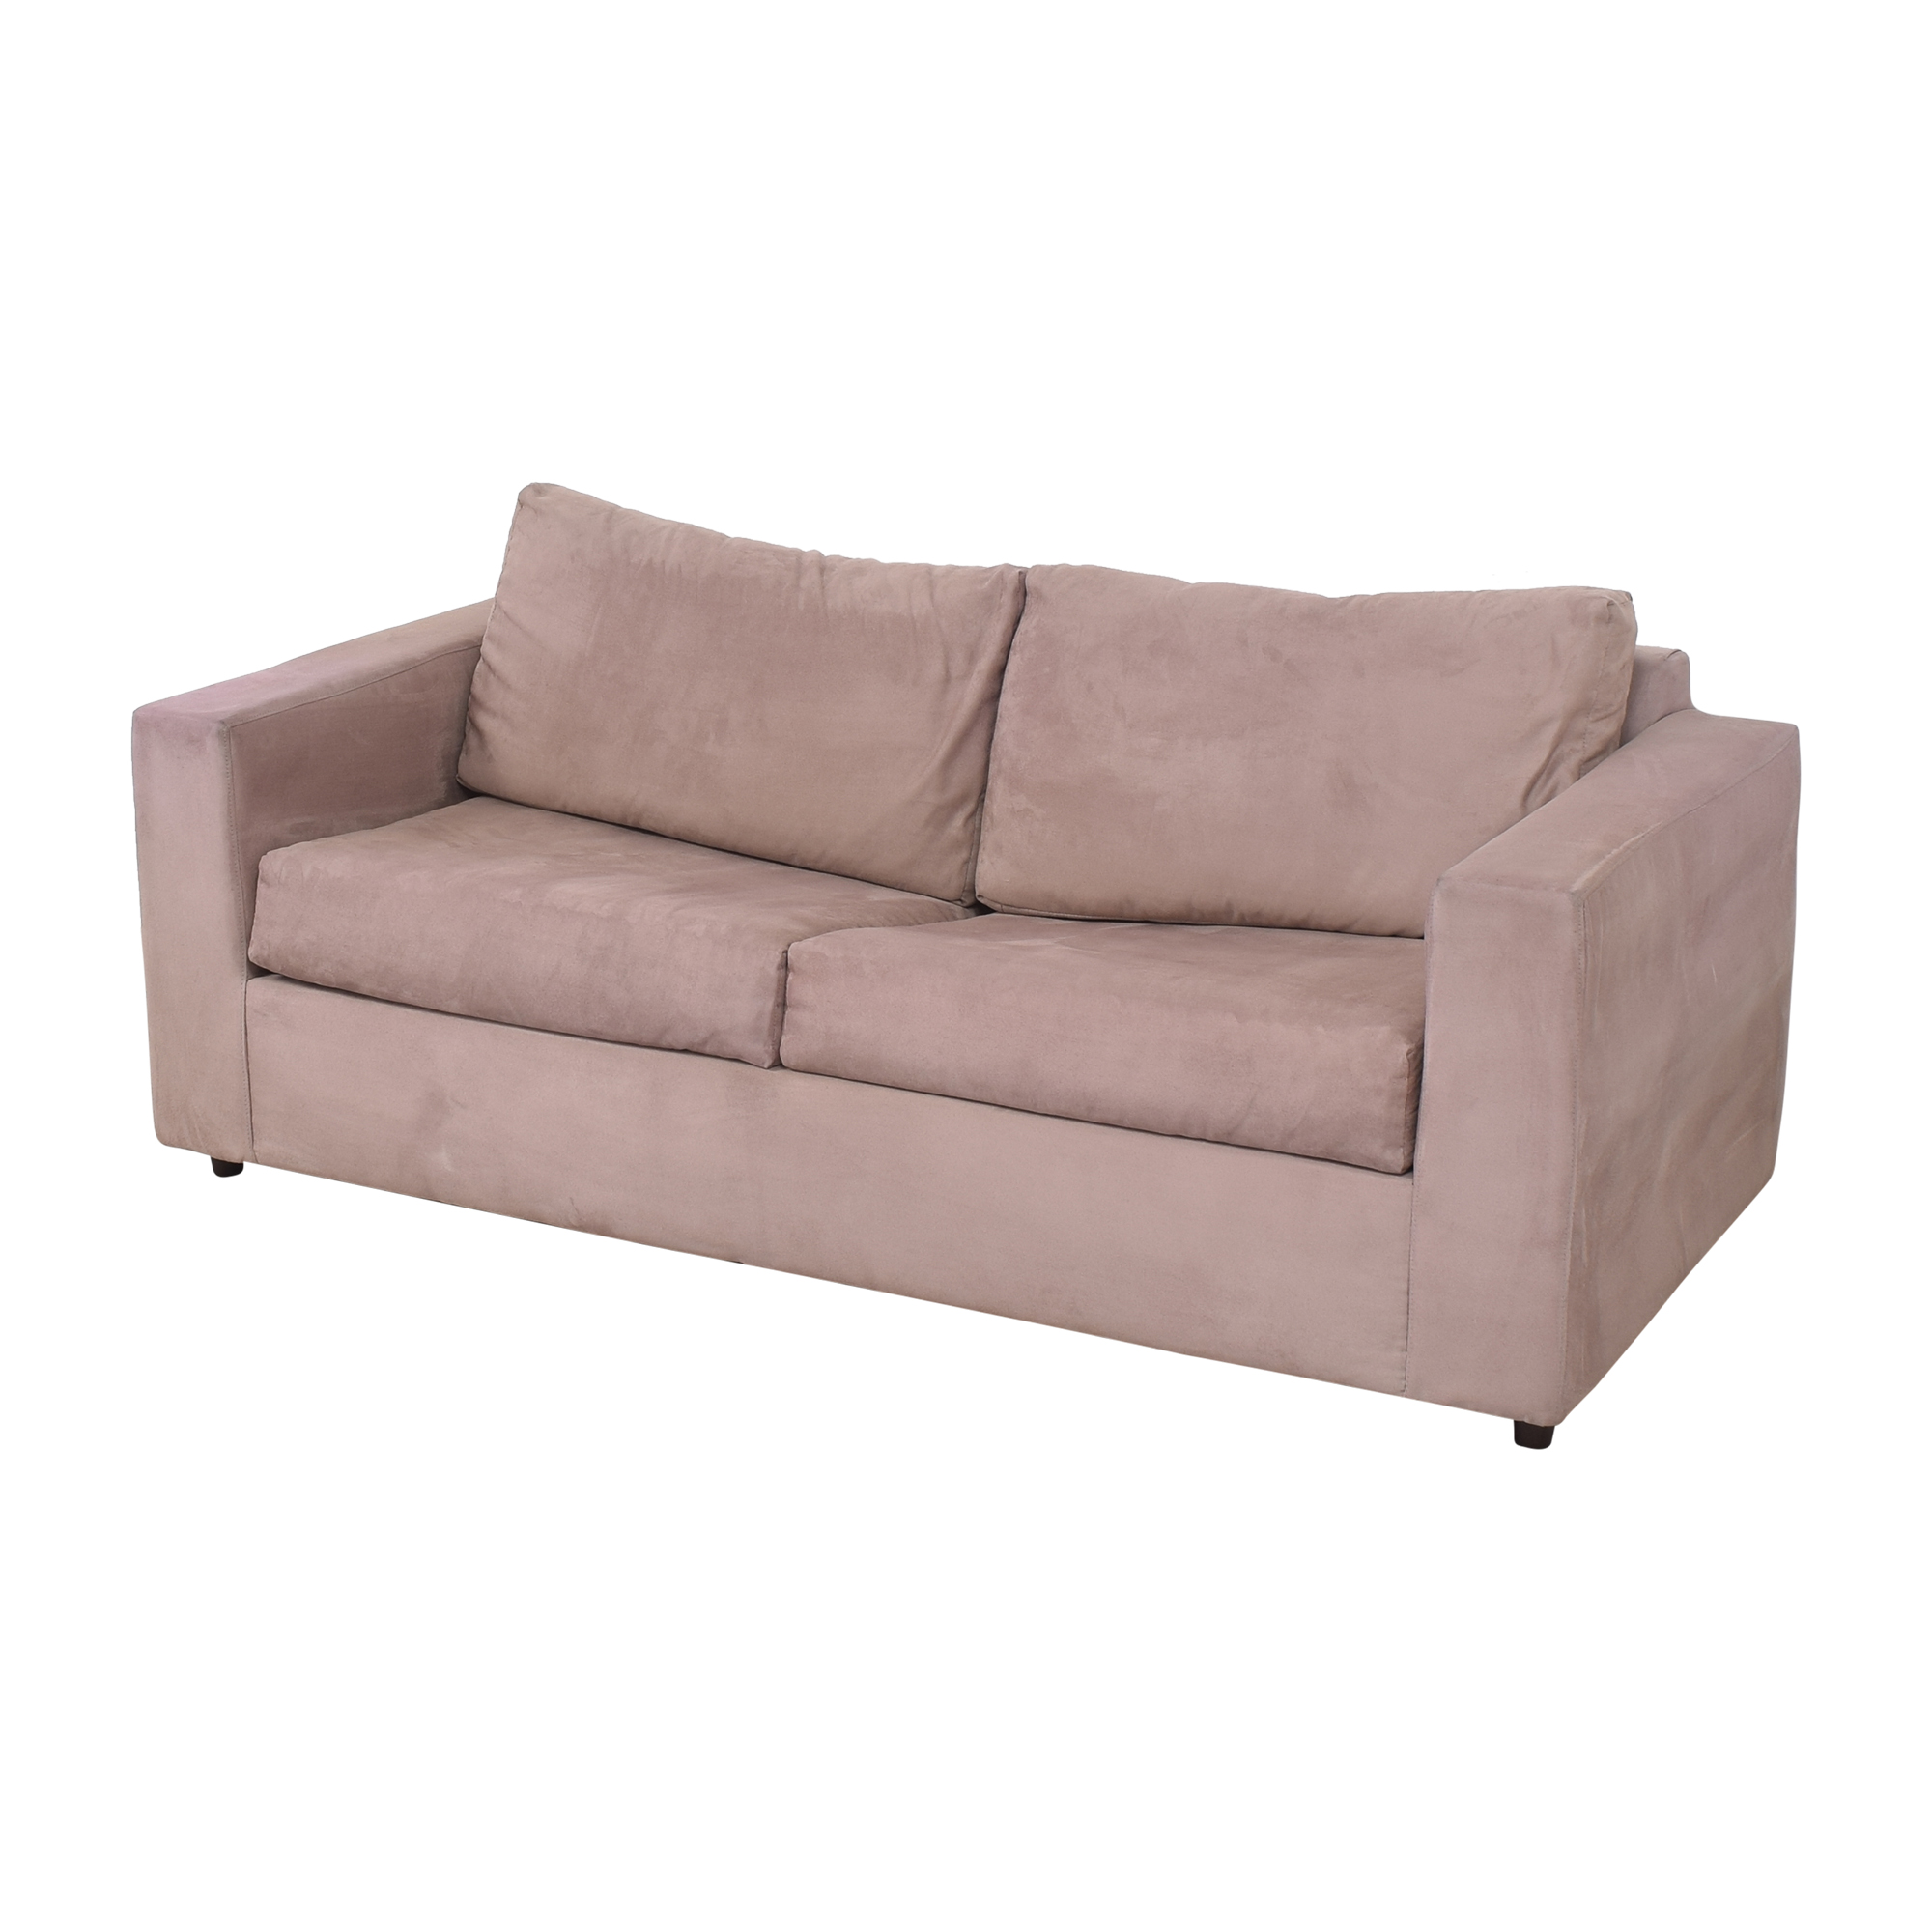 Funky Sofa Funky Sofa Full Sleeper Sofa